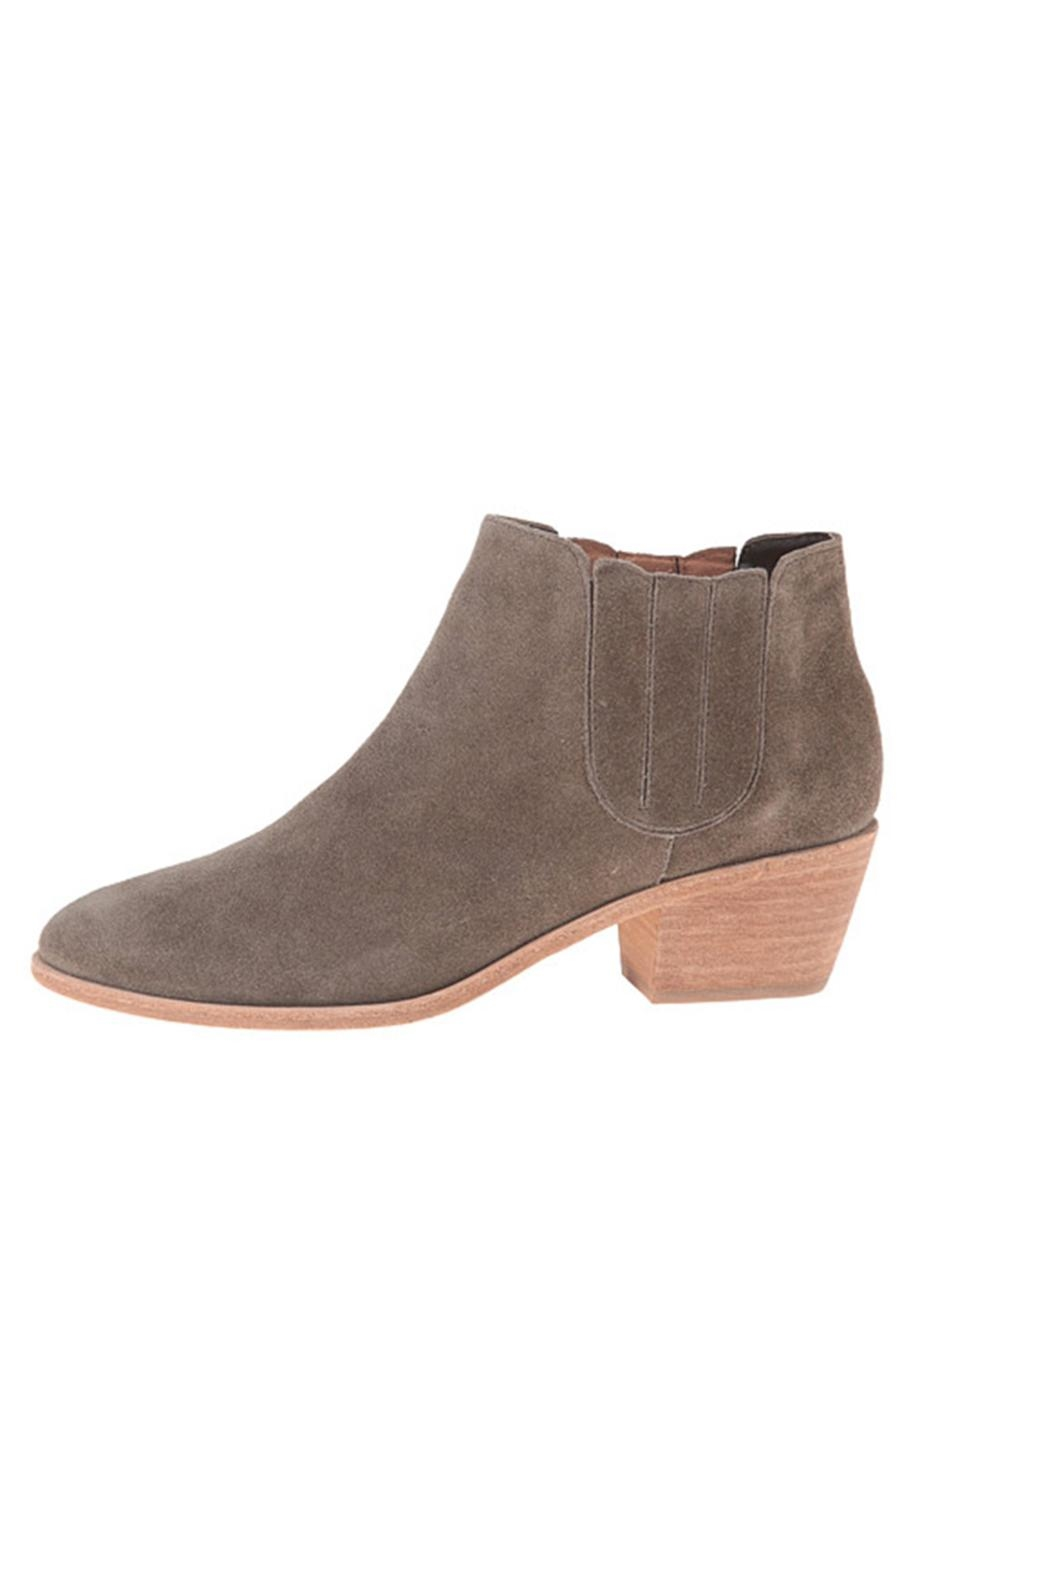 Joie Barlow Charcoal Bootie - Main Image